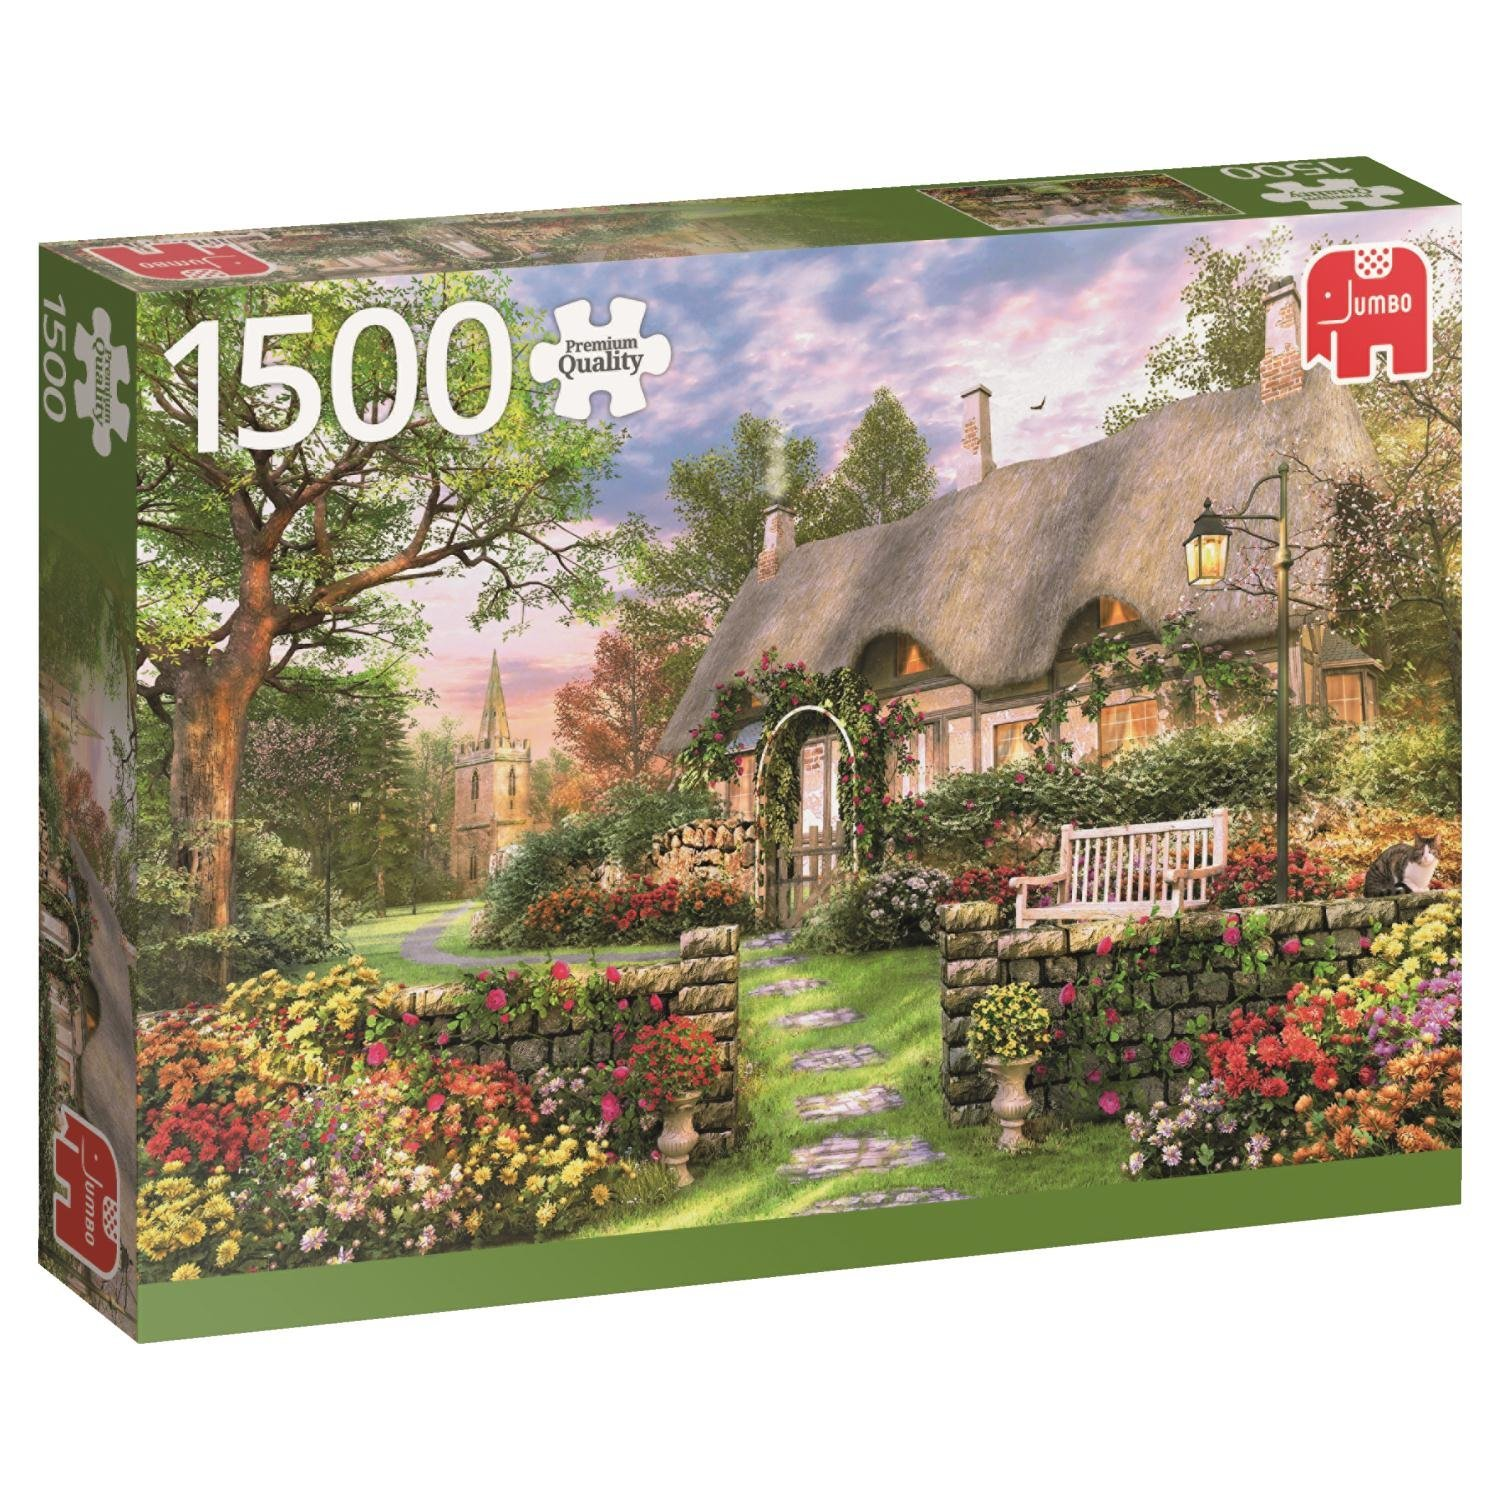 puzzle cottage jumbo 18367 1500 pieces jigsaw puzzles. Black Bedroom Furniture Sets. Home Design Ideas